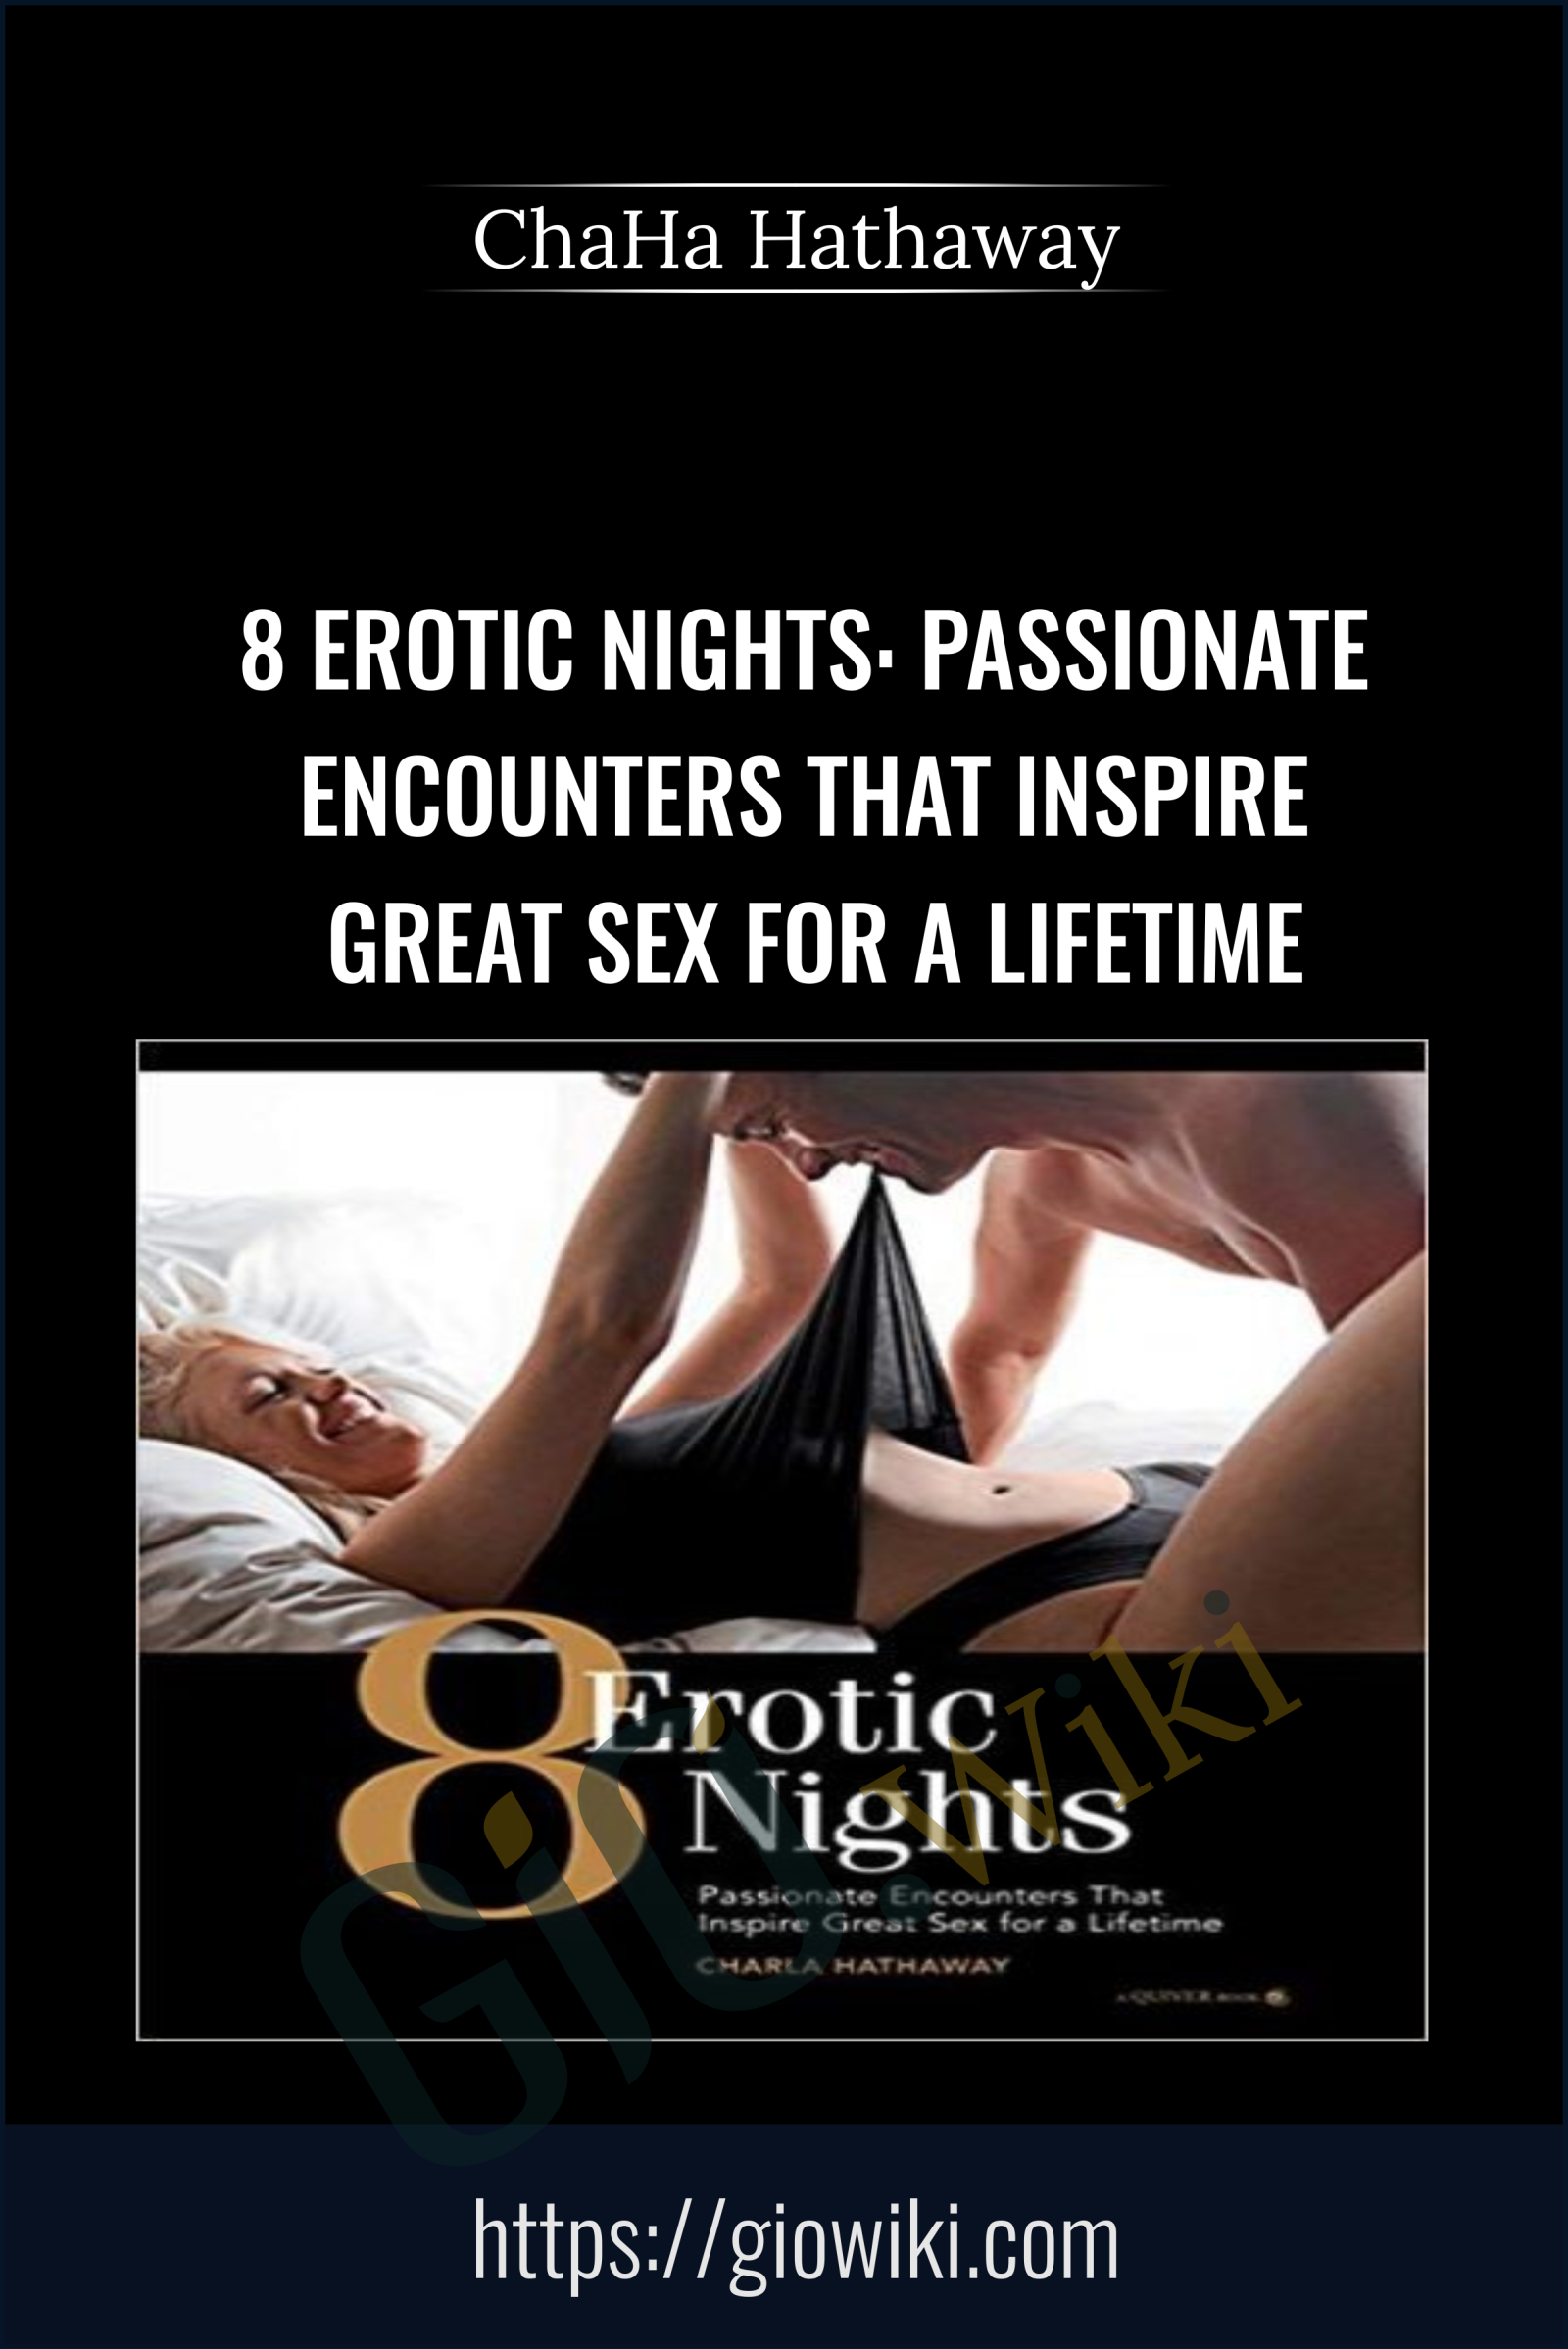 8 Erotic Nights: Passionate Encounters that Inspire Great Sex for a Lifetime - ChaHa Hathaway